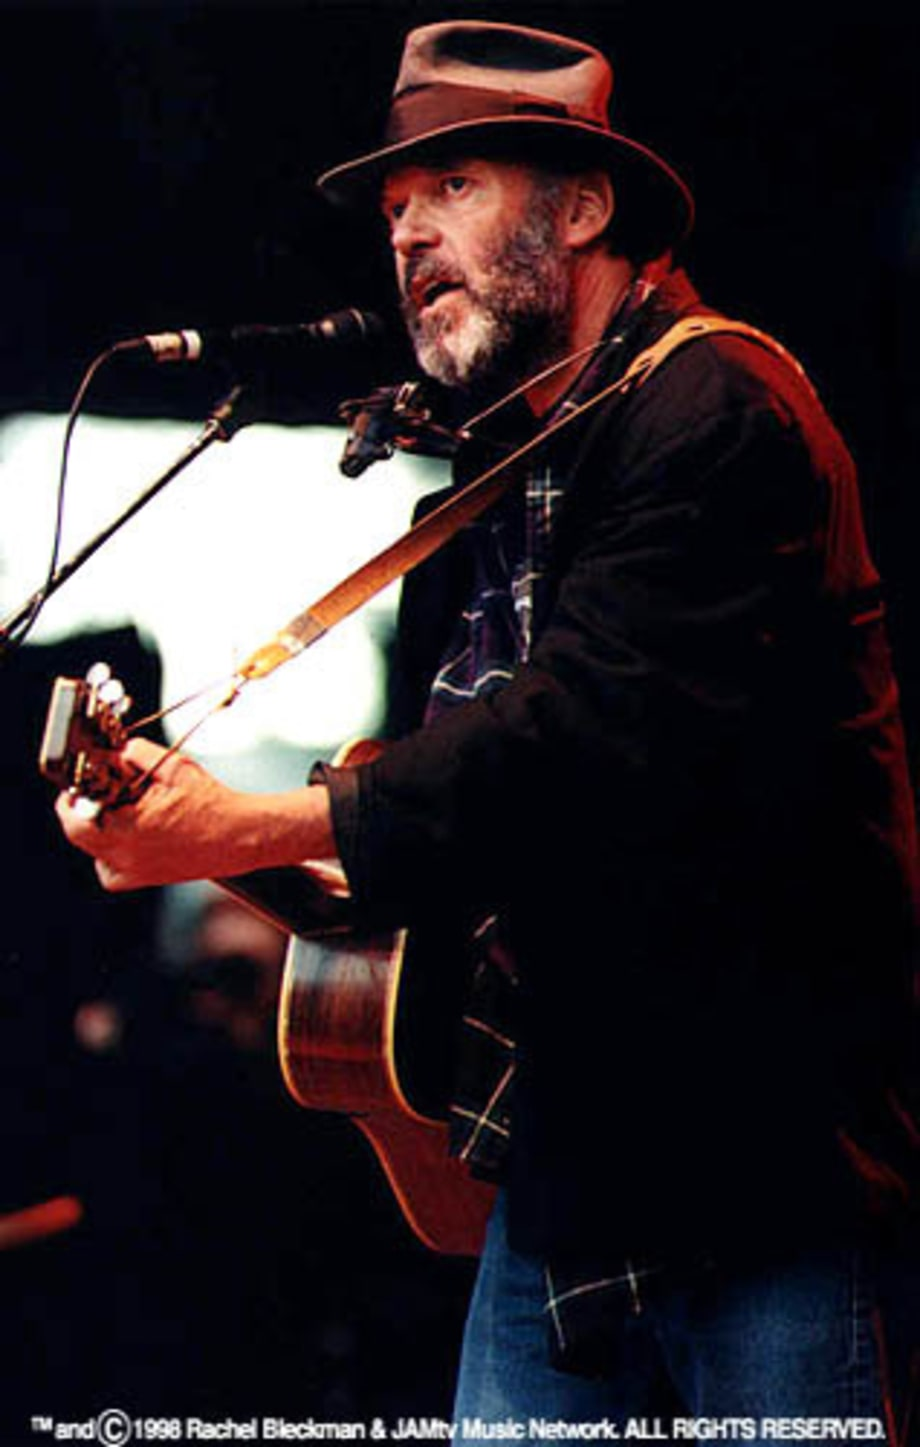 Neil Young at the Bridge School Benefit '98